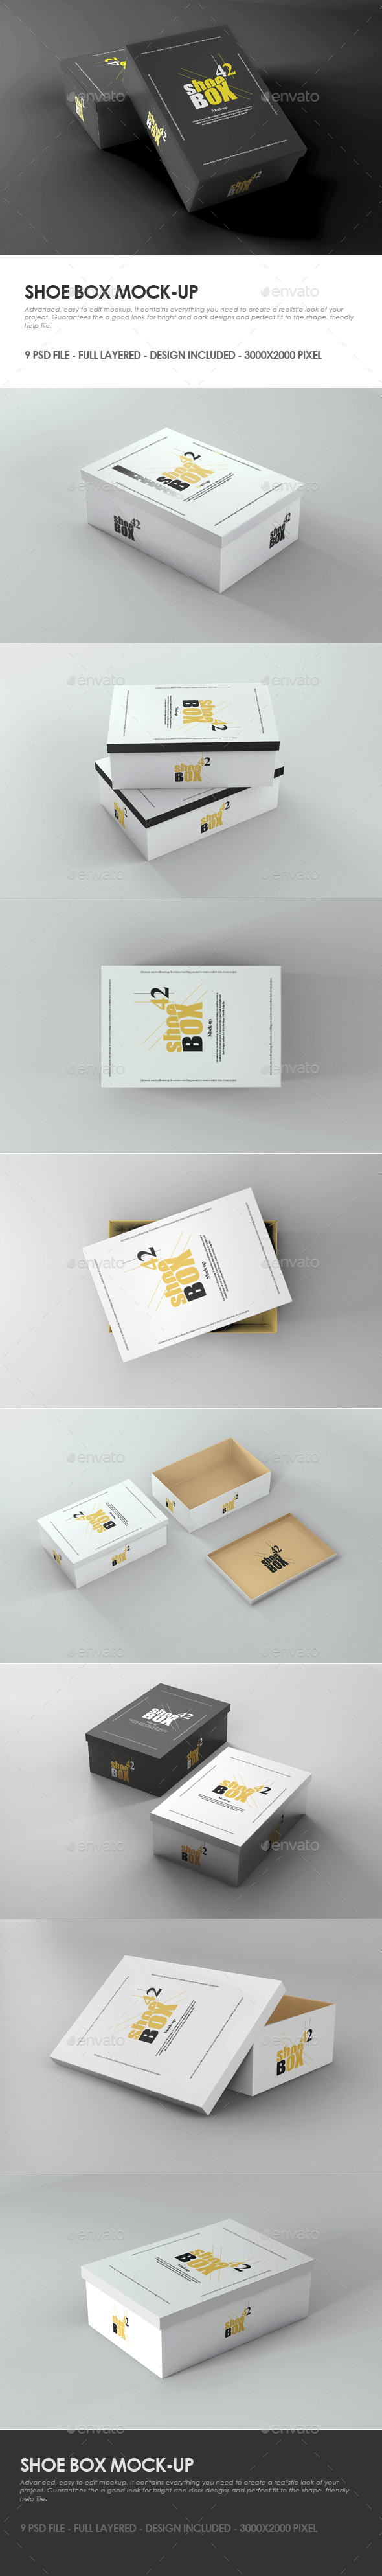 Shoe Box Mock-up - Packaging Product Mock-Ups